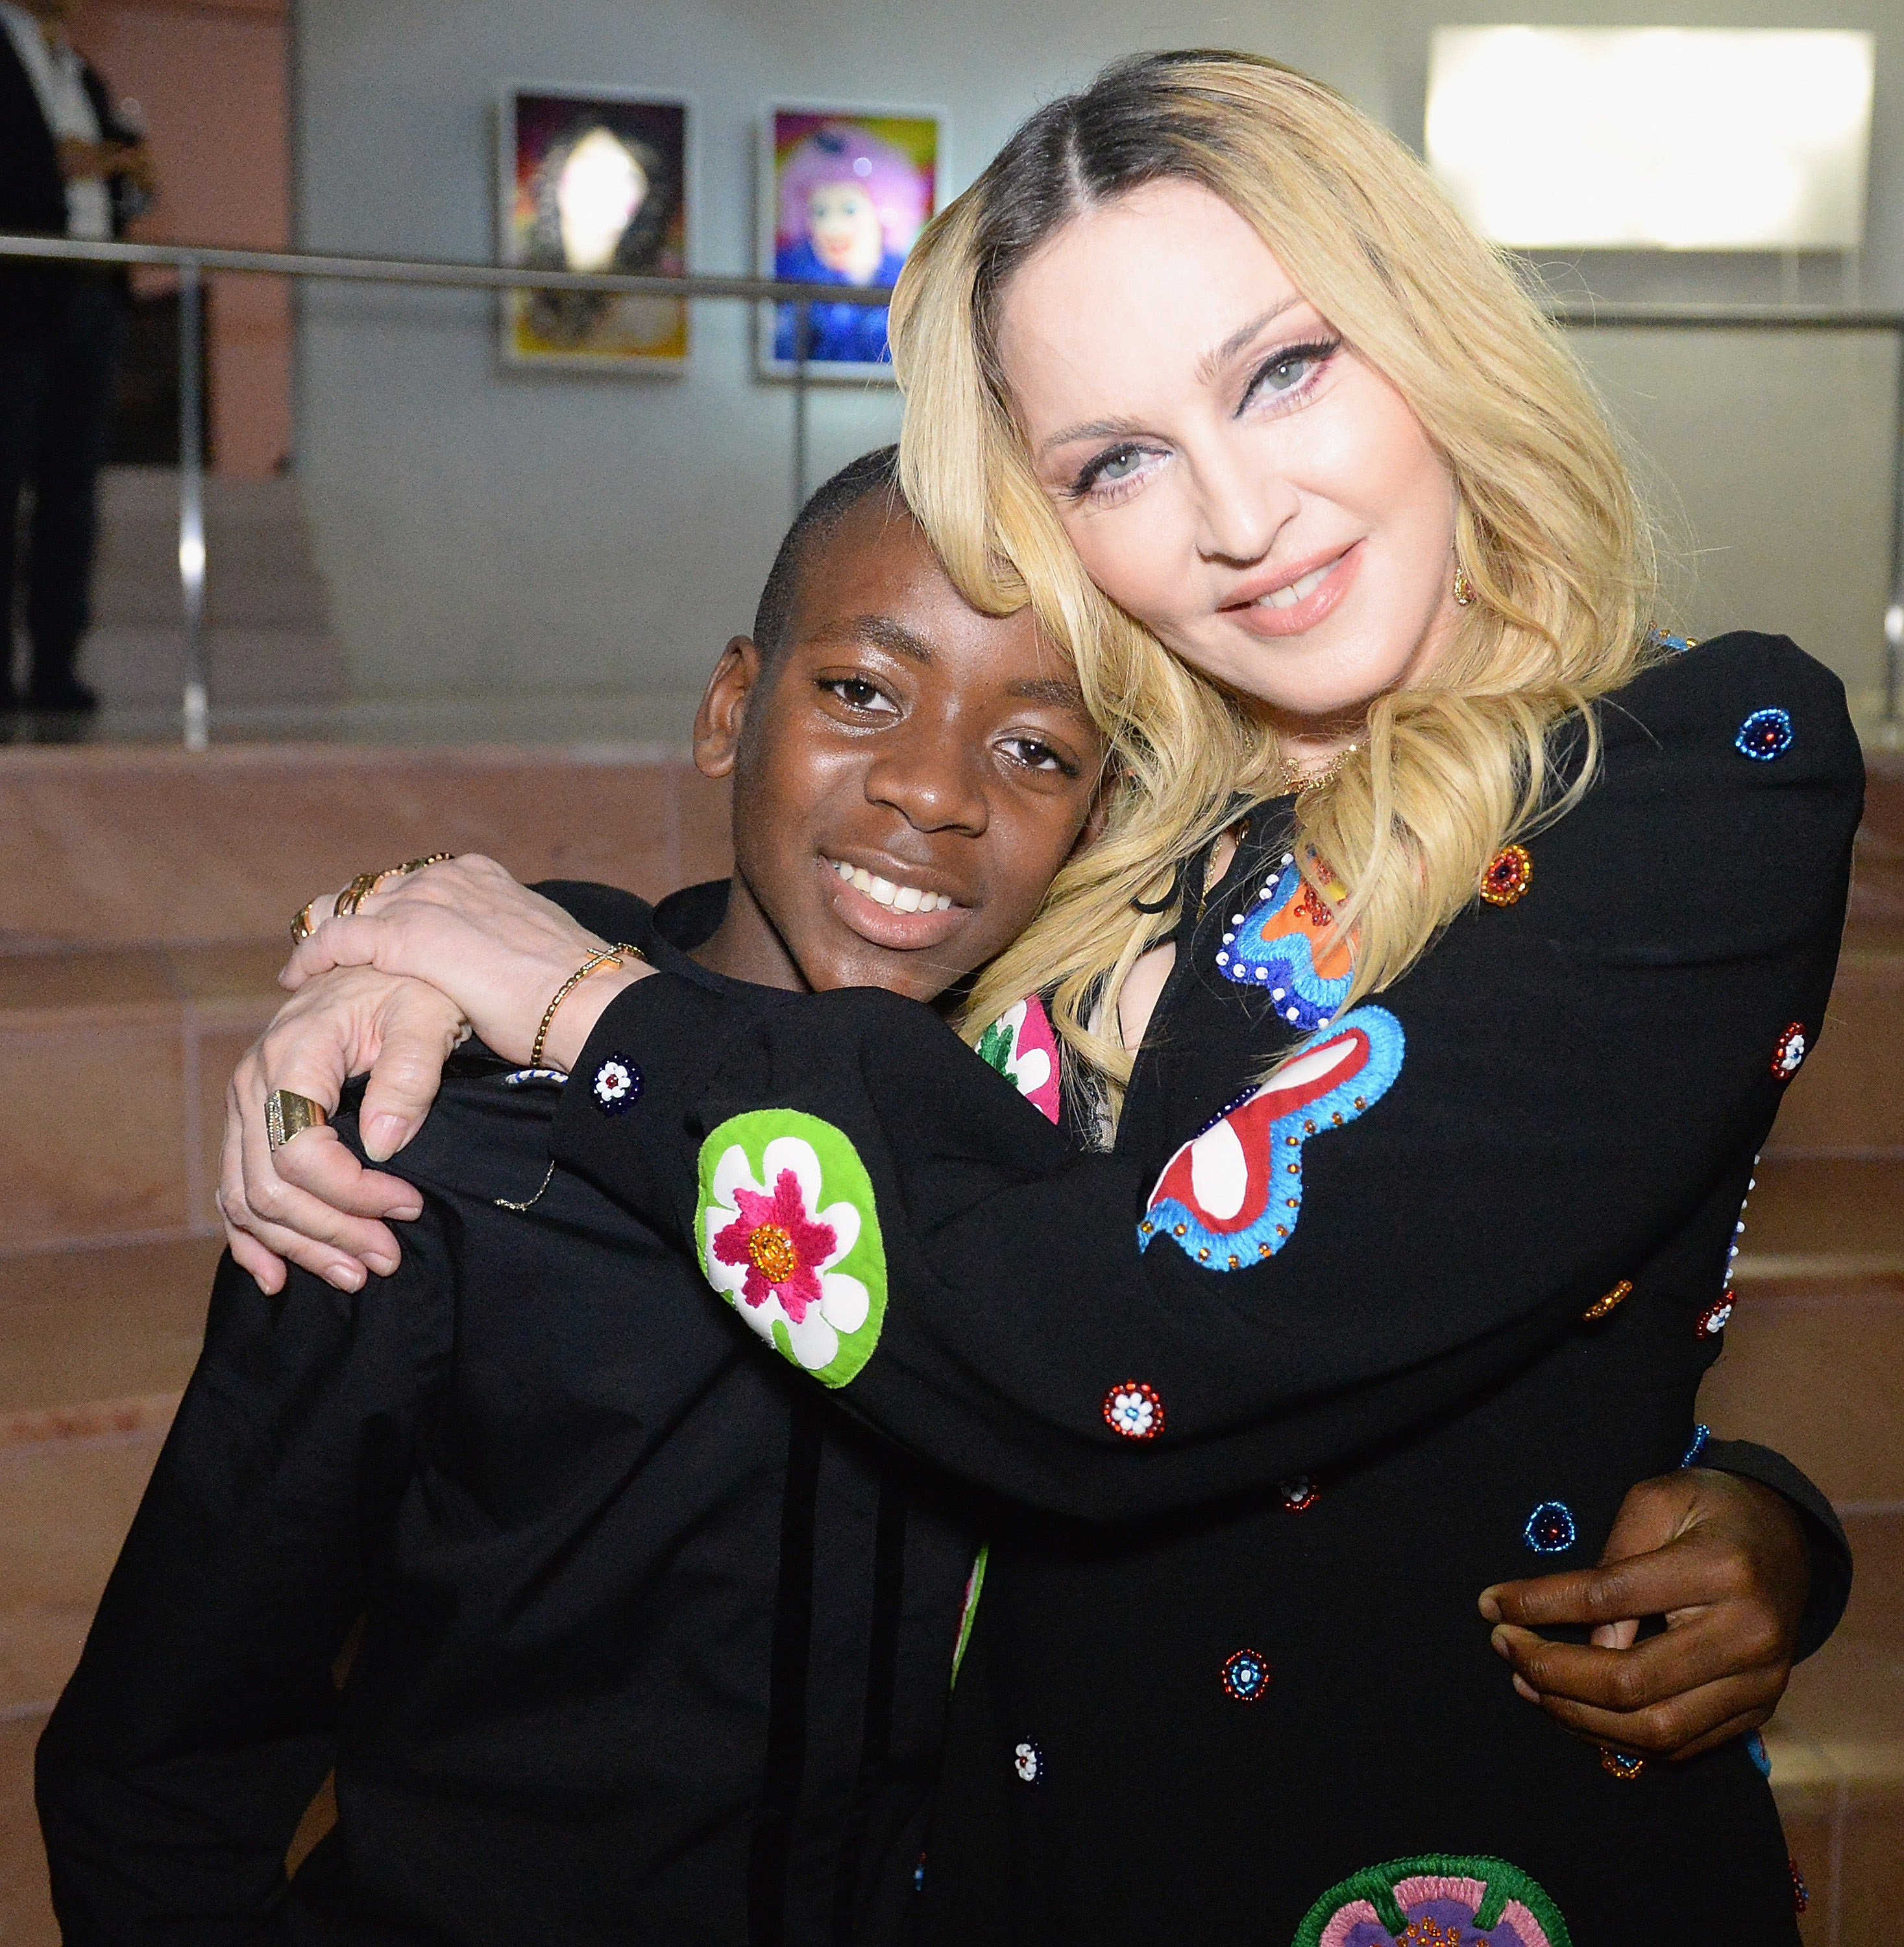 MIAMI BEACH, FL - DECEMBER 03:  David Banda and Madonna at her Evening of Music, Art, Mischief and Performance to Benefit Raising Malawi at Faena Forum on December 3, 2016 in Miami Beach, Florida.  (Photo by Kevin Mazur/Getty Images for Bulgari)